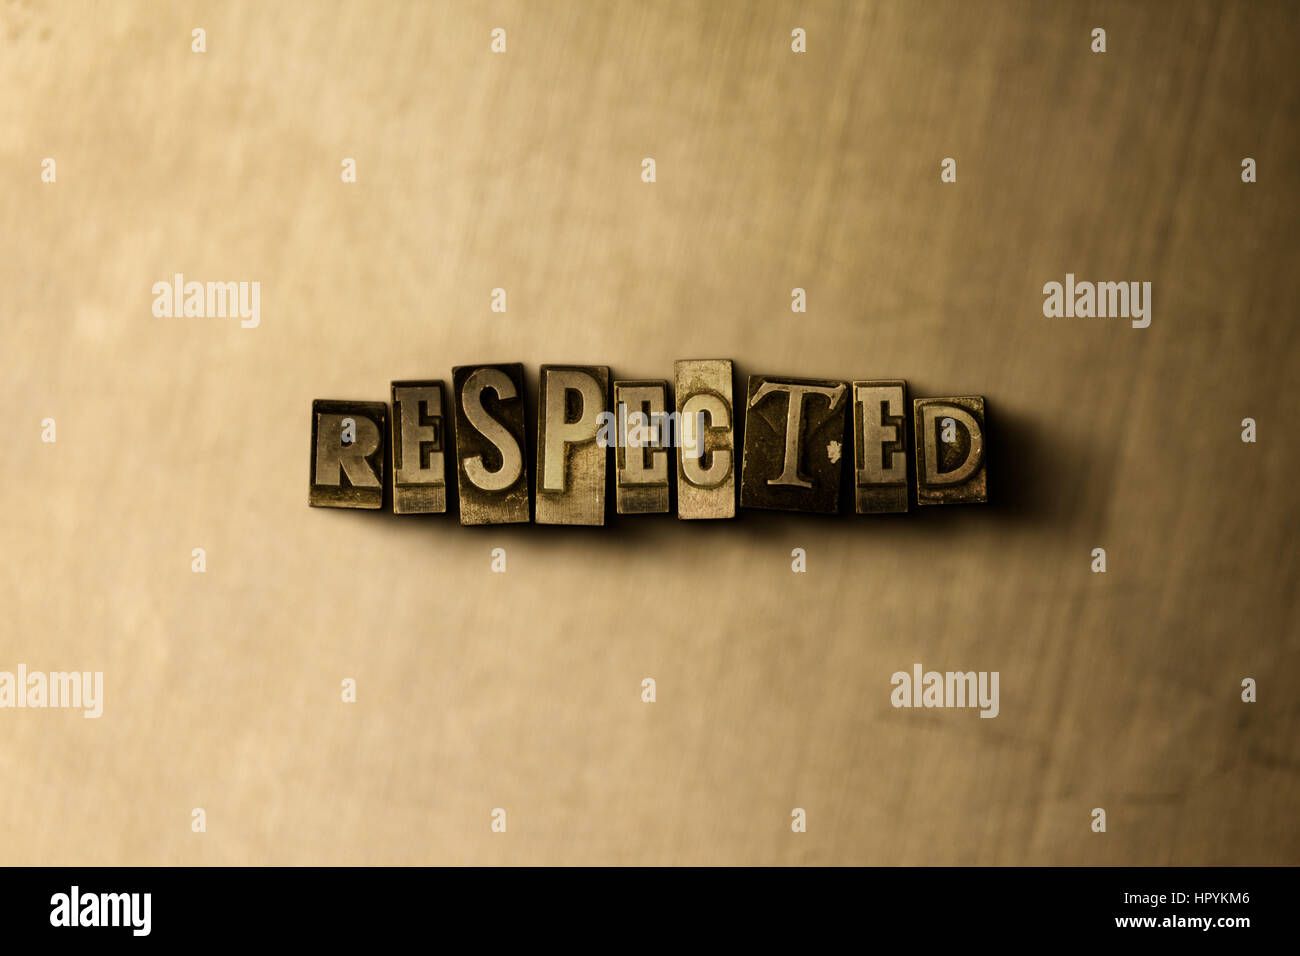 RESPECTED - close-up of grungy vintage typeset word on metal backdrop. Royalty free stock - 3D rendered stock image. - Stock Image